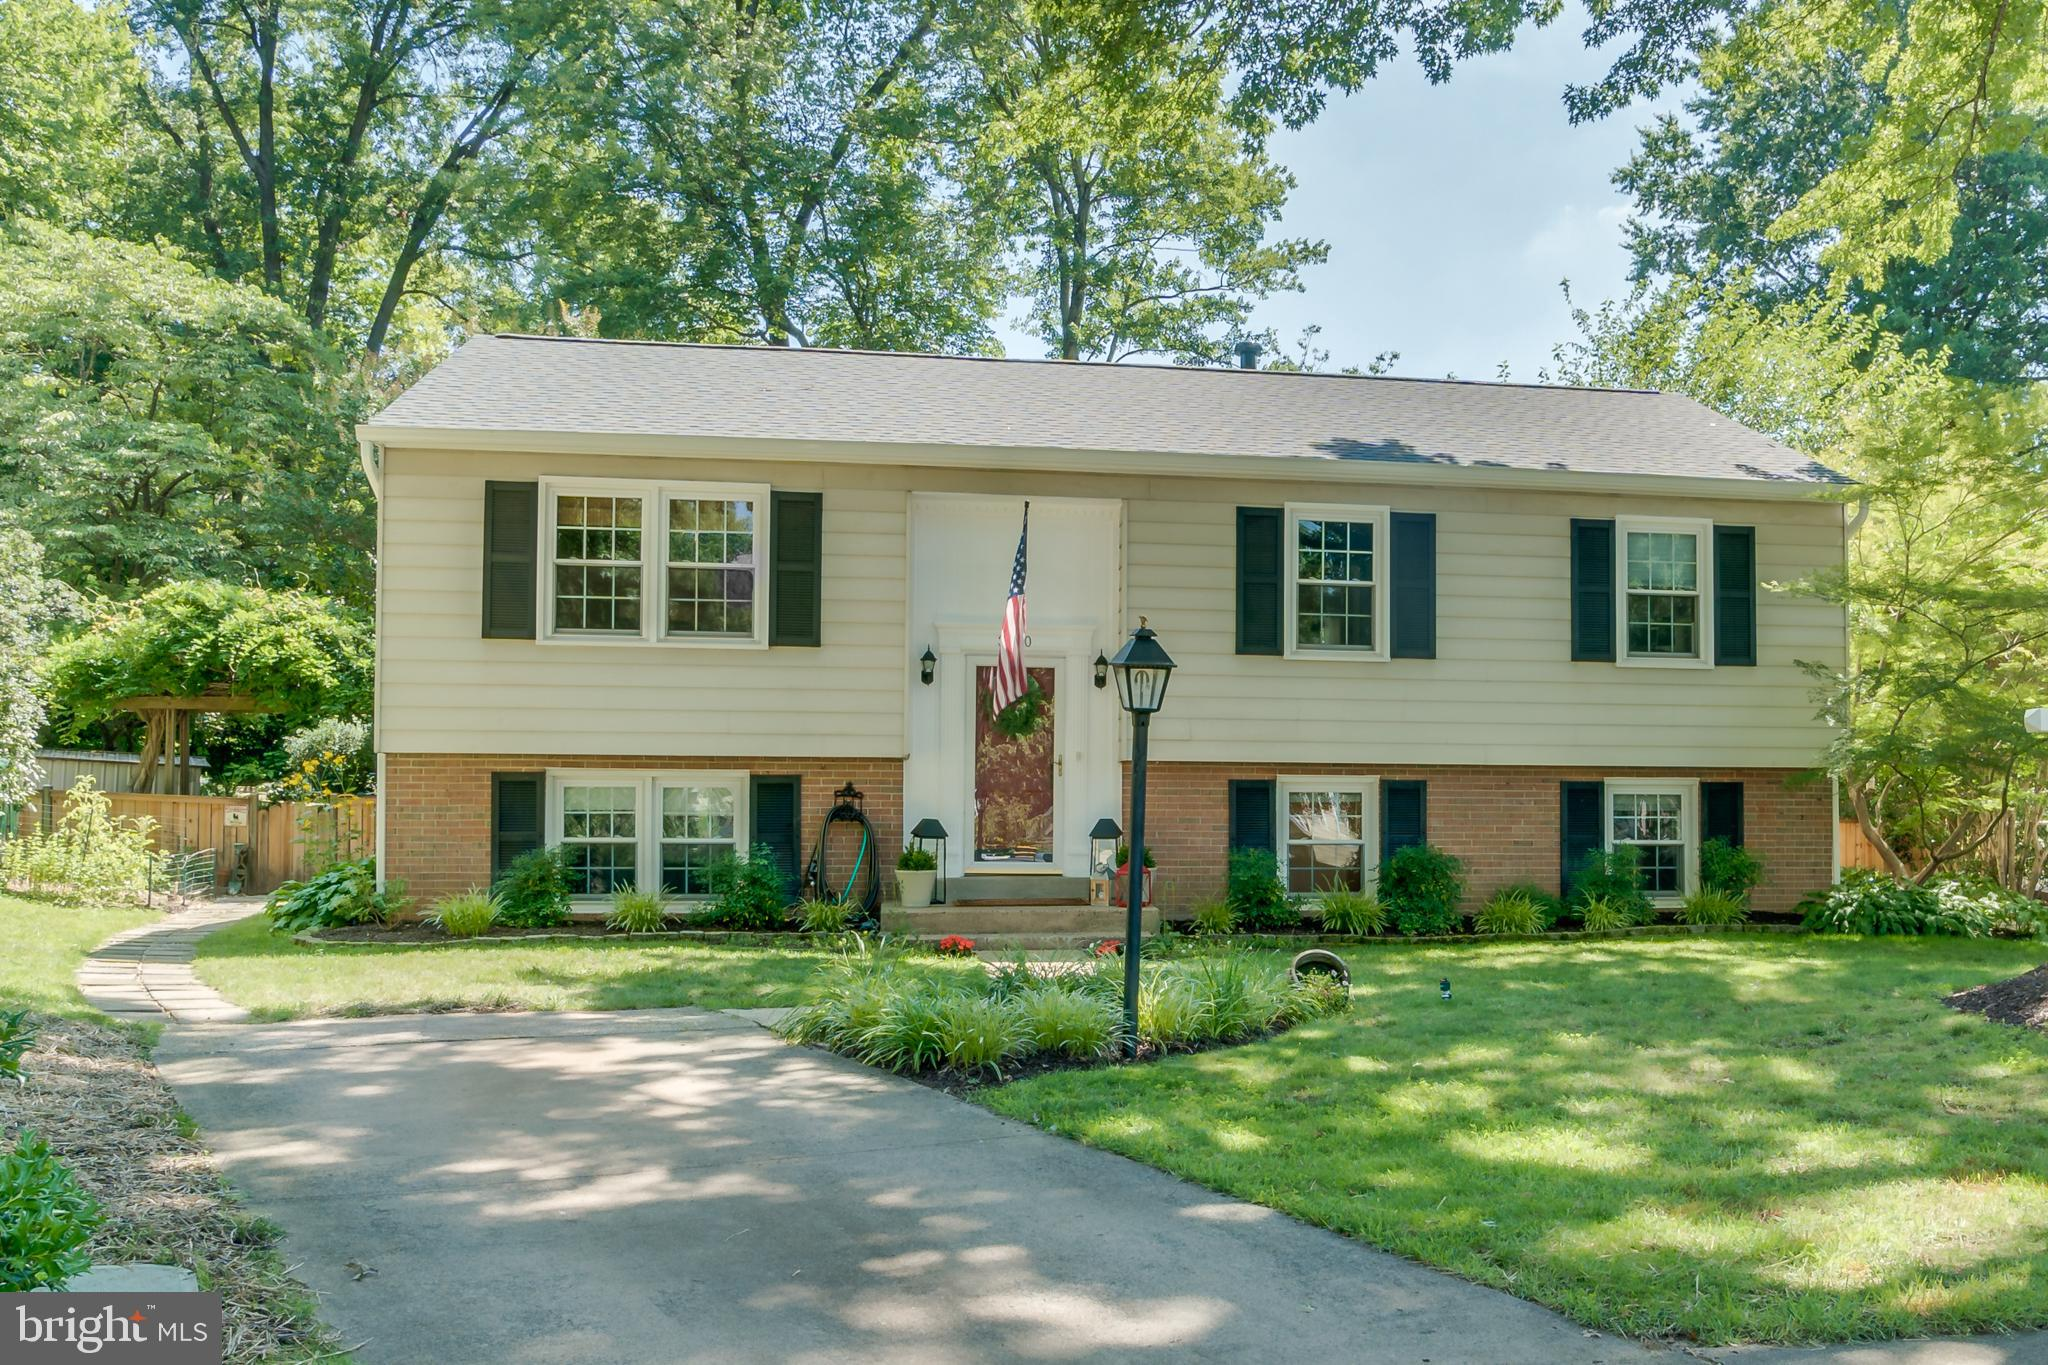 Gorgeous and unexpectedly large split foyer tucked away on a secluded cul-de-sac in Stoneybrooke.  This home has been meticulously maintained and features new for 2019 updates including lighting, faucets, bathrooms,  roof and gutters.  Renovated kitchen with custom Omega cabinetry featuring soft close drawers,  pantry cabinet with pull out shelves, mullion doors and granite counters.  Large counter height peninsula island perfect for entertaining.  Oak hardwood floors cover the main level living, bedroom floors, and lower level recreation room.  High efficiency vinyl windows throughout.  Master Bedroom features newly updated ensuite bath with white subway tile. Upper level full bath features updated lighting, white subway tile, faucet, white vanity and cast iron bathtub.  Huge lower level recreation room with ample room for large cozy furniture.  Lower level full bathroom and bedroom with private sitting room make for the perfect Au Pair or In law suite. Large partially finished laundry and utility room with plenty of extra storage space and walkout to side yard.  Enjoy the great outdoors in the exquisitely landscaped fully fenced yard. Mature shade trees provide respite from the summer heat and the large flat lawn is encompassed in beautiful gardens of colorful perennials  including black eyed-susans and hydrangea bushes. Pass through the wisteria draped gate into the corner secret garden with a flagstone patio and wrought iron bench waiting for you to bring a good book and a cup of tea.  Relax on your maintenance free Trex composite deck with new friends and old.  Community features playground, basketball court, tennis courts, and covered eating near the park. Stoneybrooke residents are welcome to join Virginia Hills Pool less than a mile away. Multiple shopping centers and restaurants are within 3 miles. Only a 10 minute drive to Huntington Metro where you can take the yellow line direct to Old Town Alexandria, Reagan International Airport, National Landing (Amazon HQ2), Pentagon and into the District.